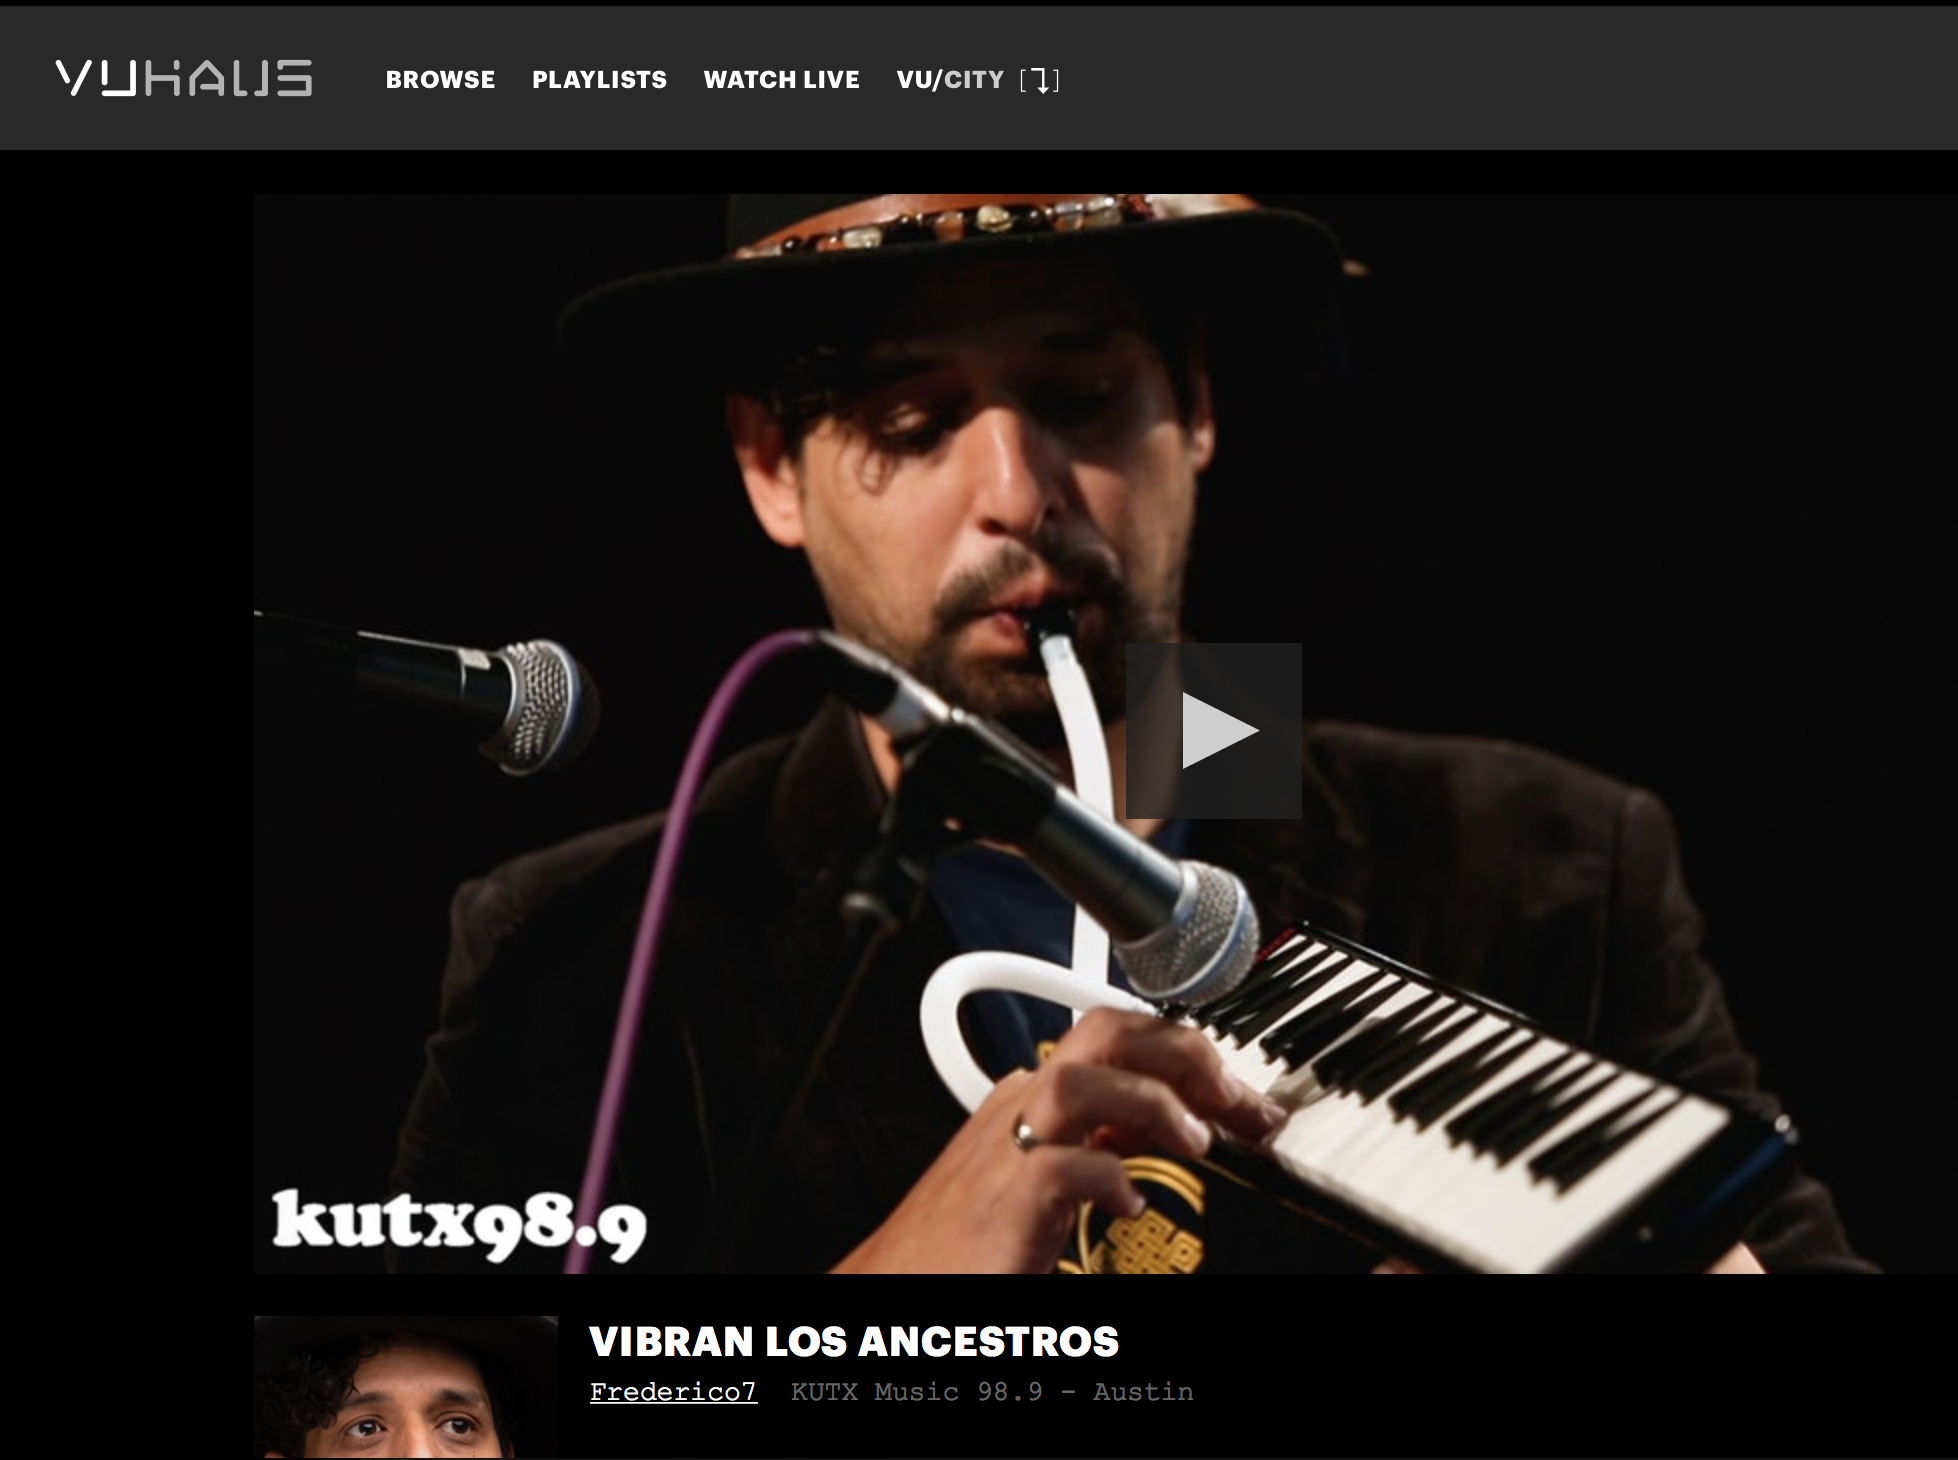 Vibran los Ancestros live performance  - Click on Image to enjoy the video